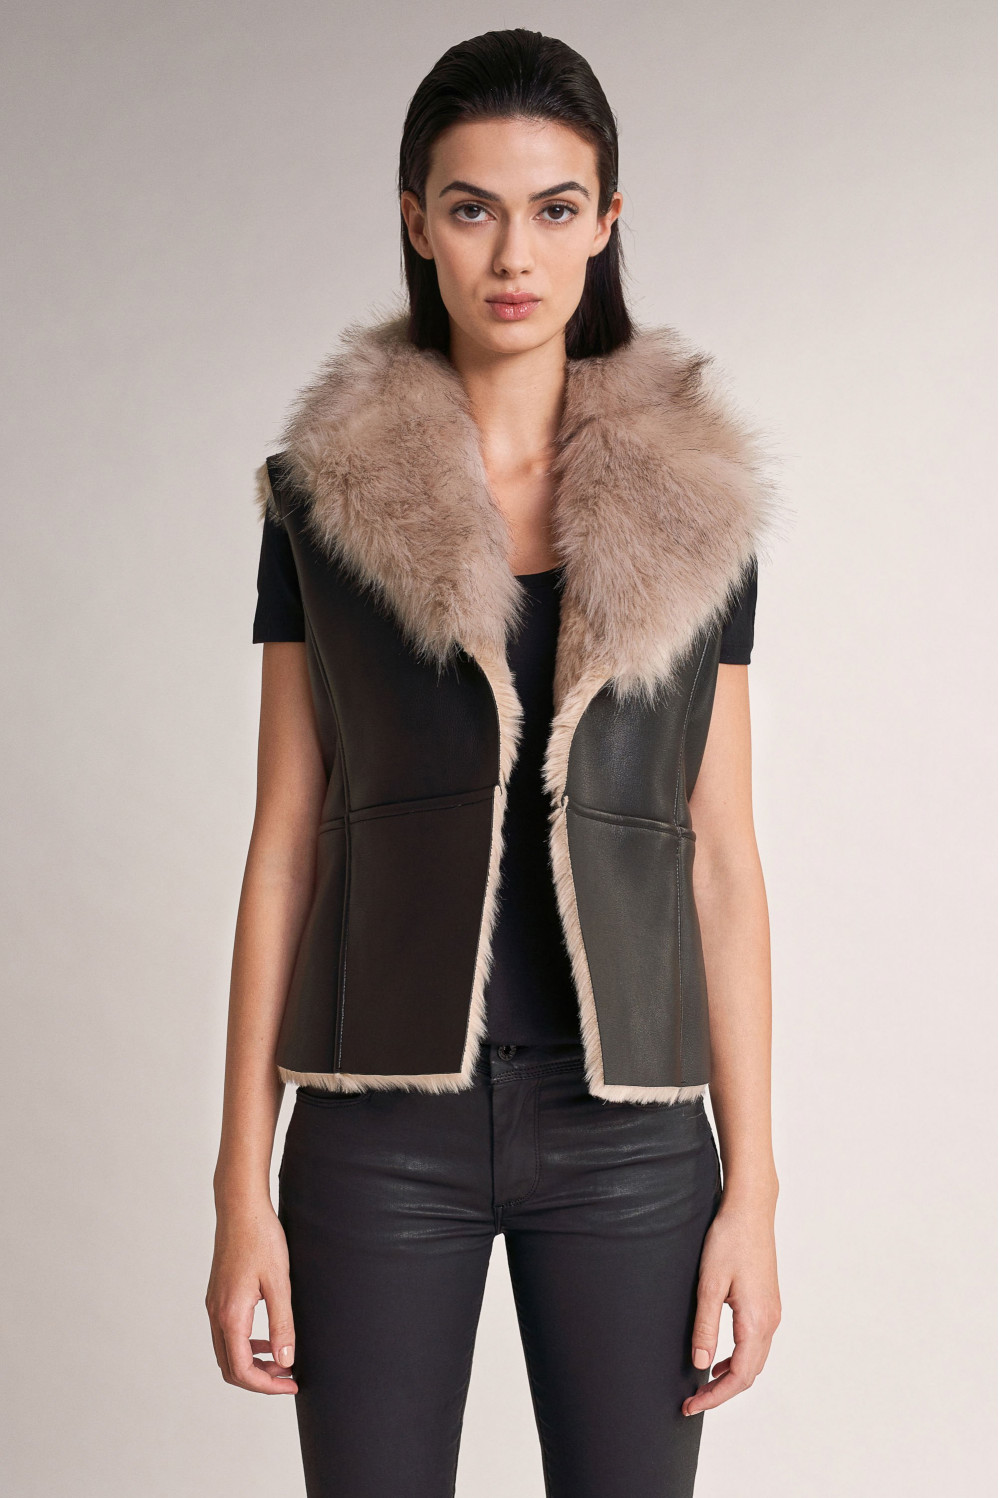 Motard jacket with faux fur collar and inner